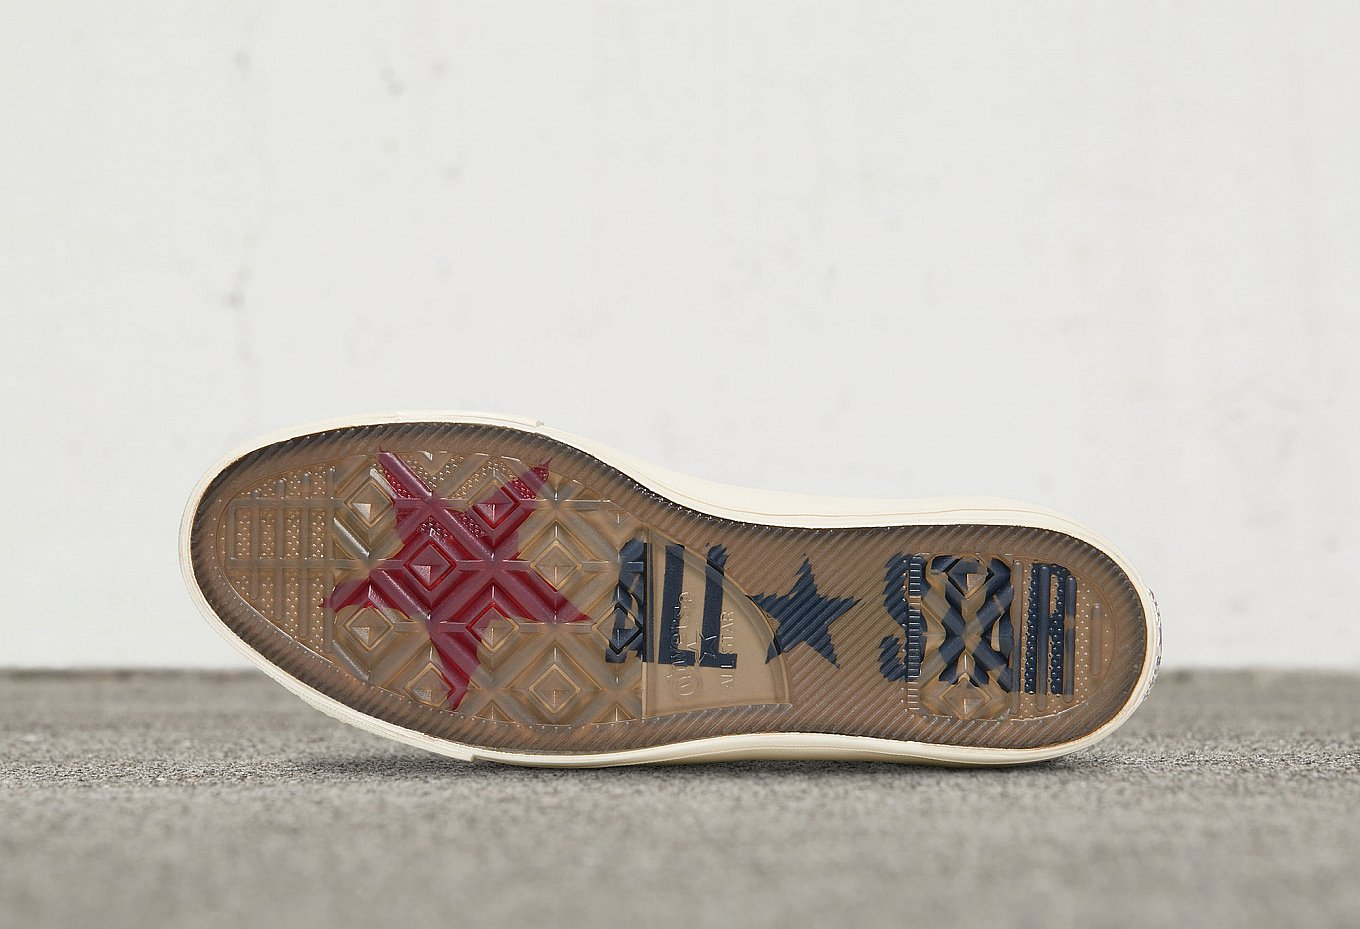 converse-x-john-varvatos-chuck-taylor-all-star-4